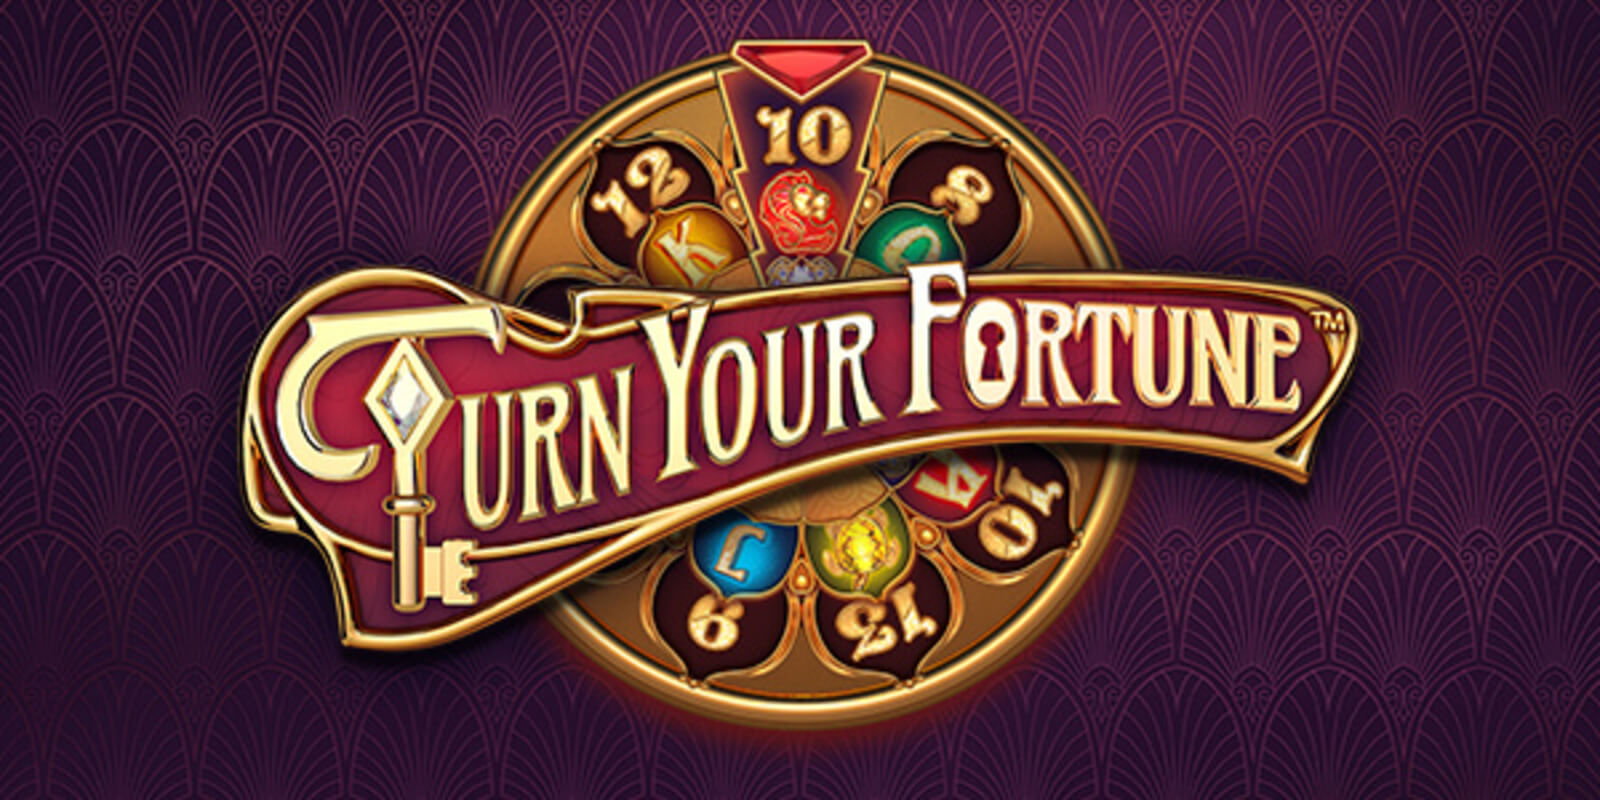 TURN YOUR FORTUNE at kerching casino